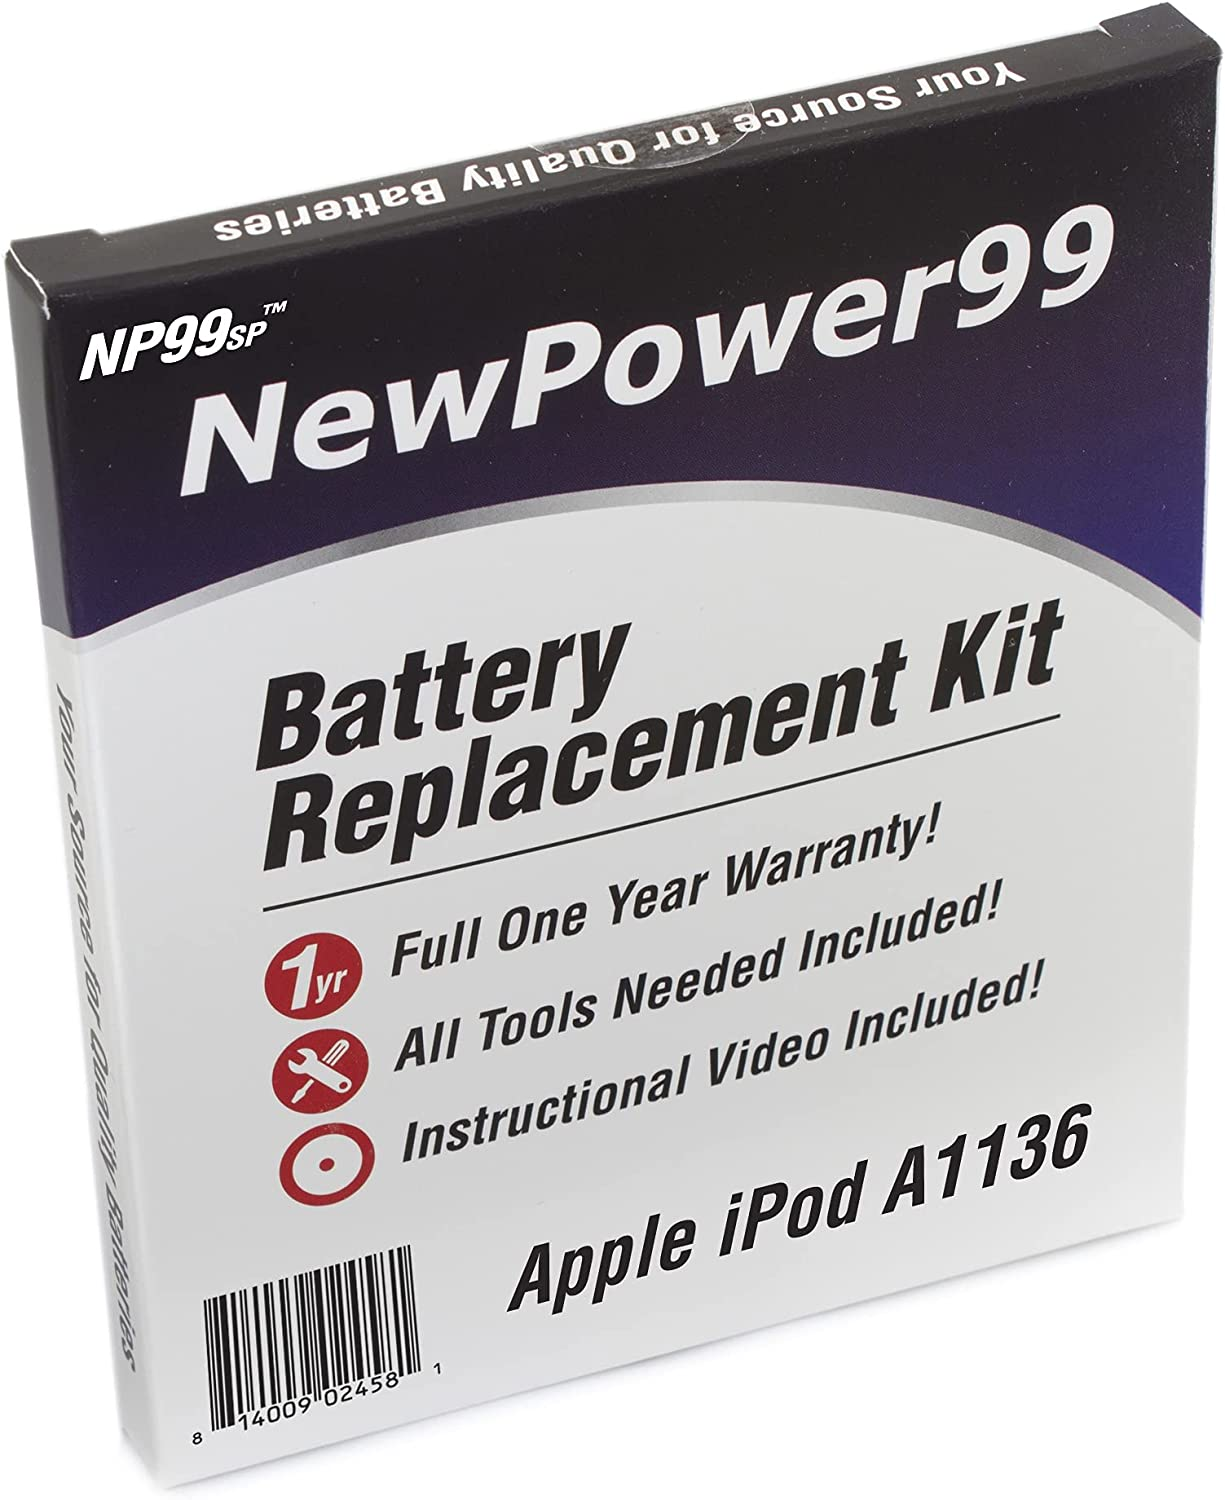 Battery Kit for iPod Video A1136 with Tools, How-to Video, and Extended Life Battery from NewPower99